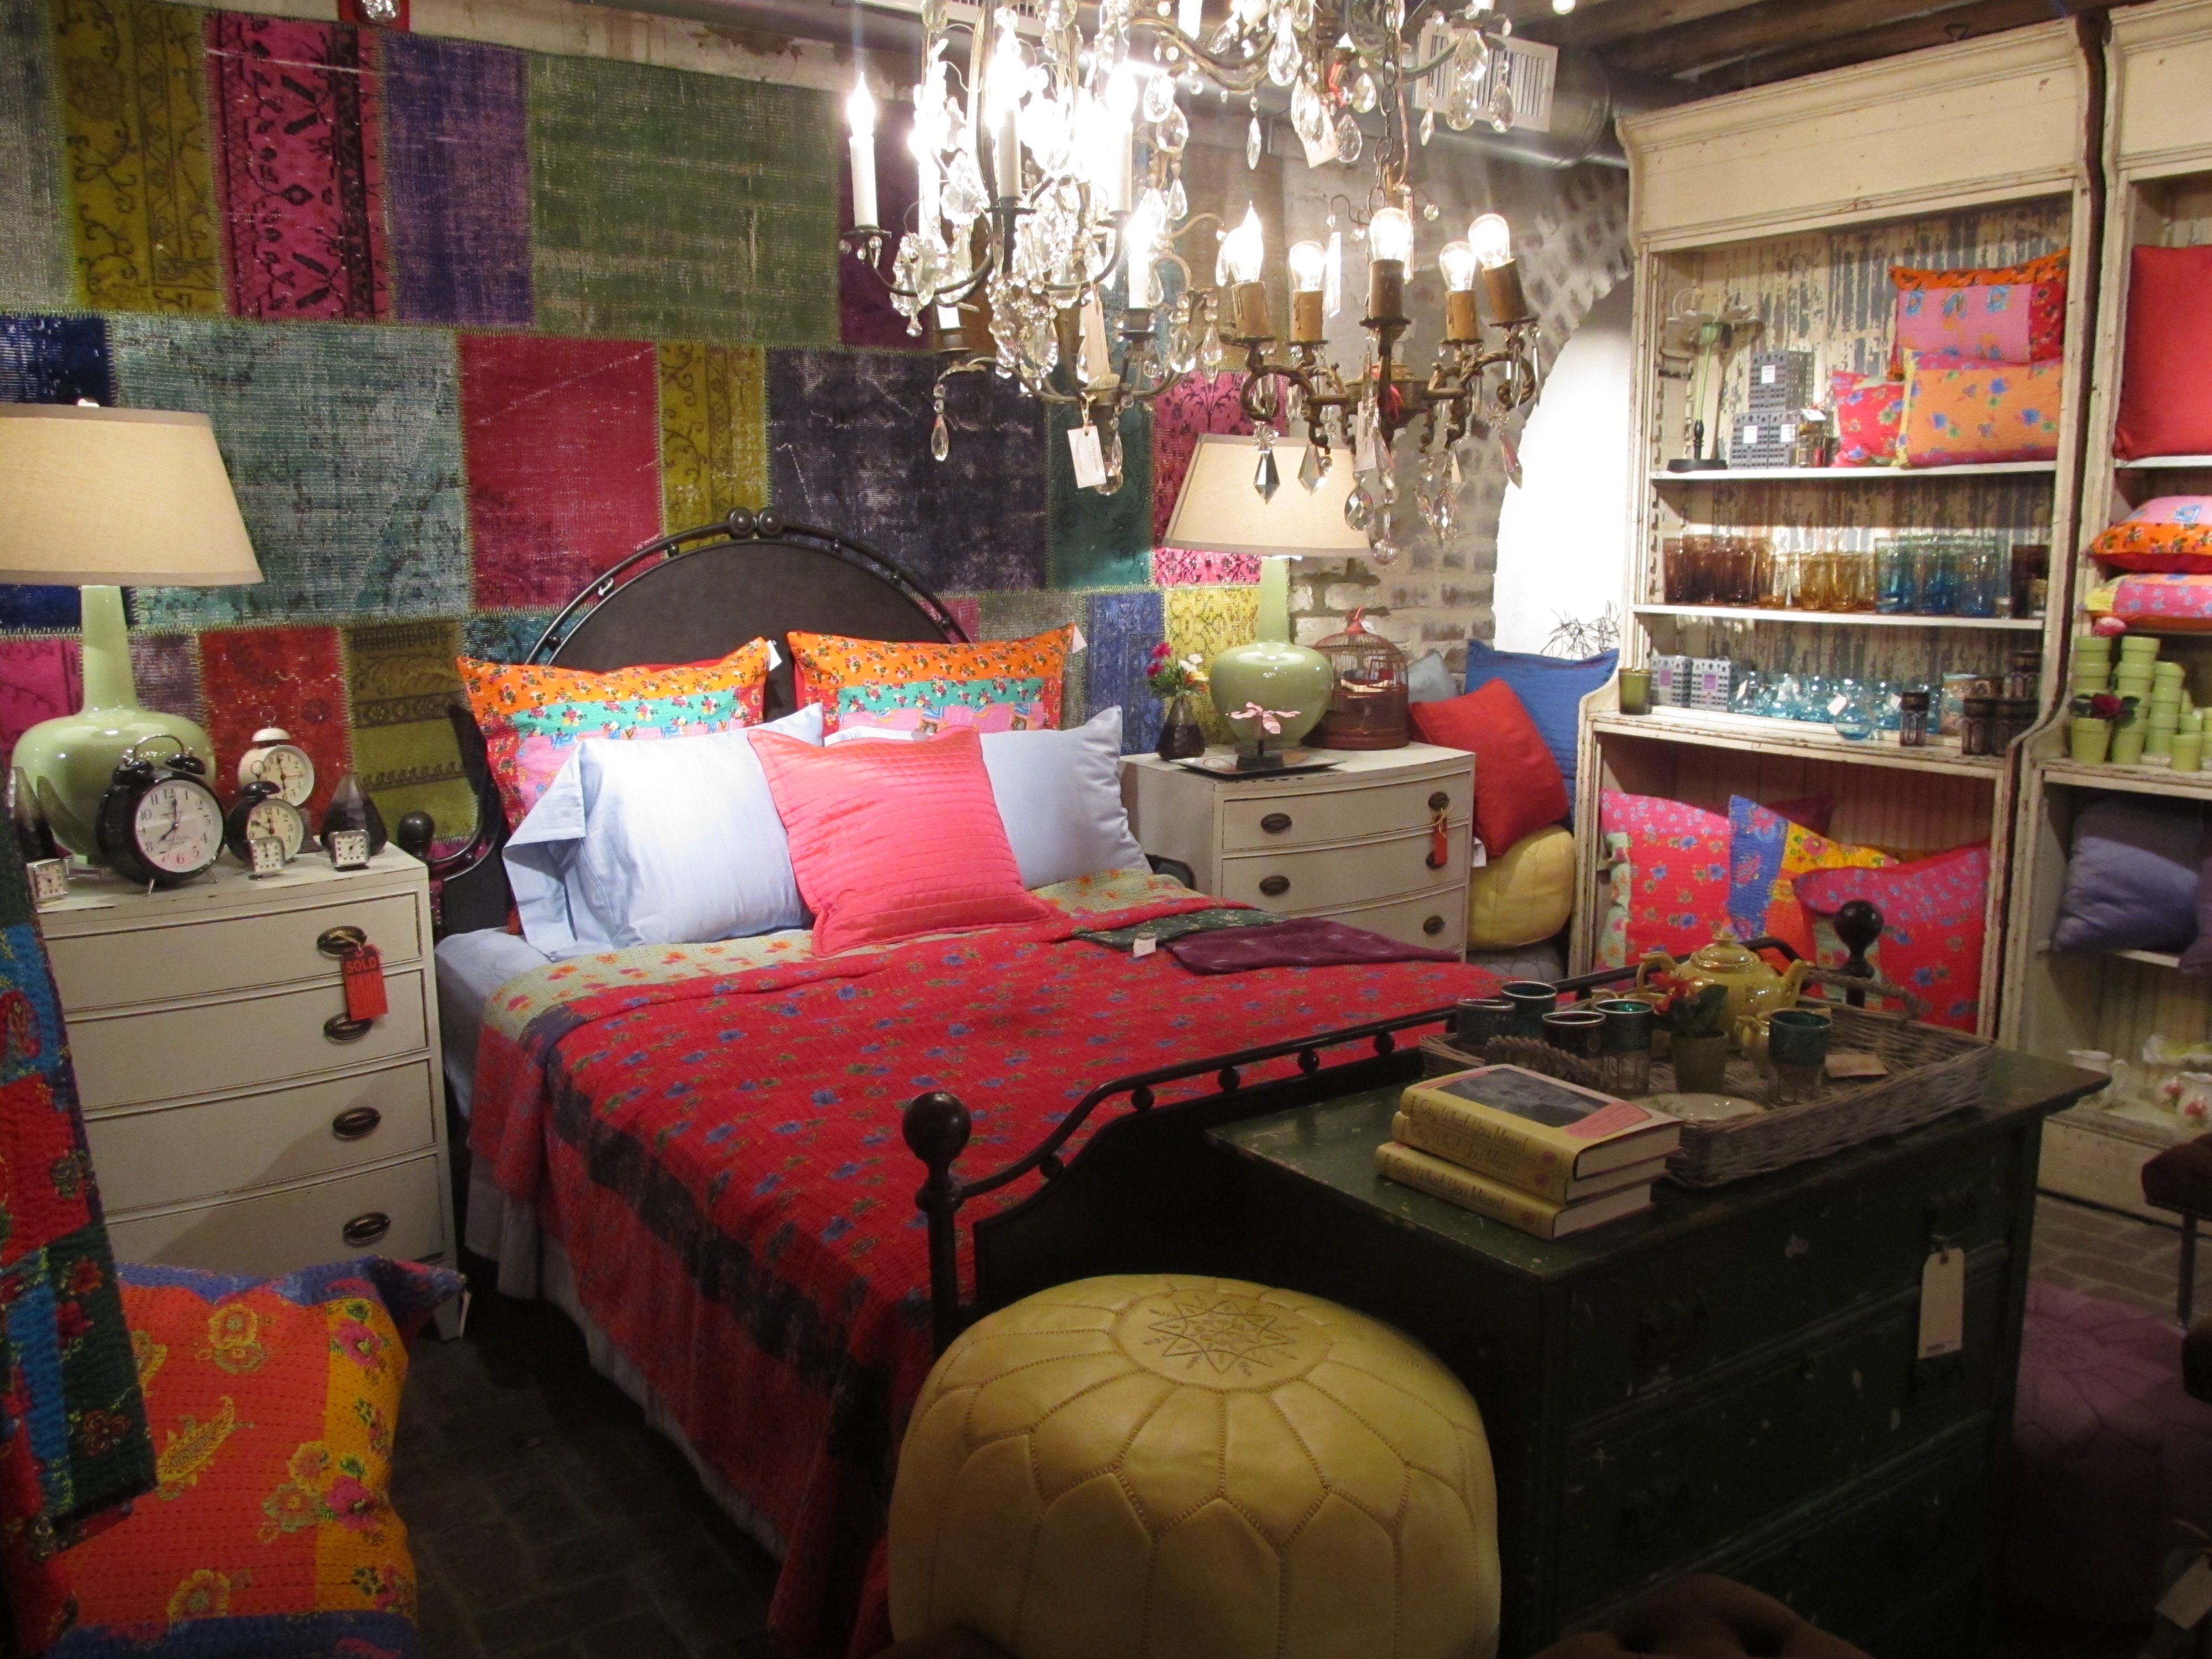 Bohemian interior design definition 1000 images about bohogypsy bedroom ideas